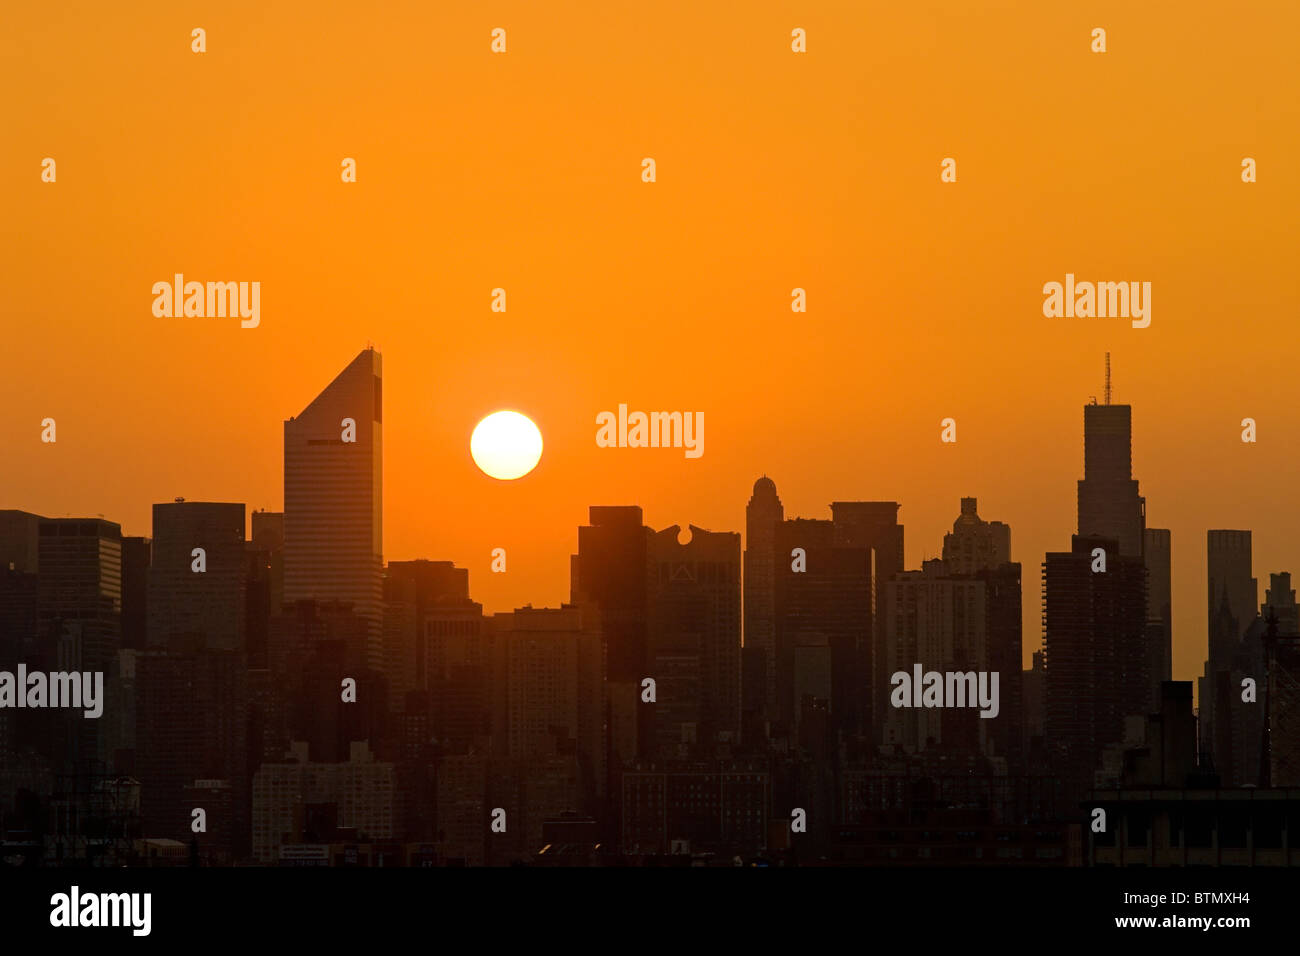 Skyline von Midtown Manhattan mit dem Citicorp-Center, bei Sonnenuntergang, New York City. Stockbild